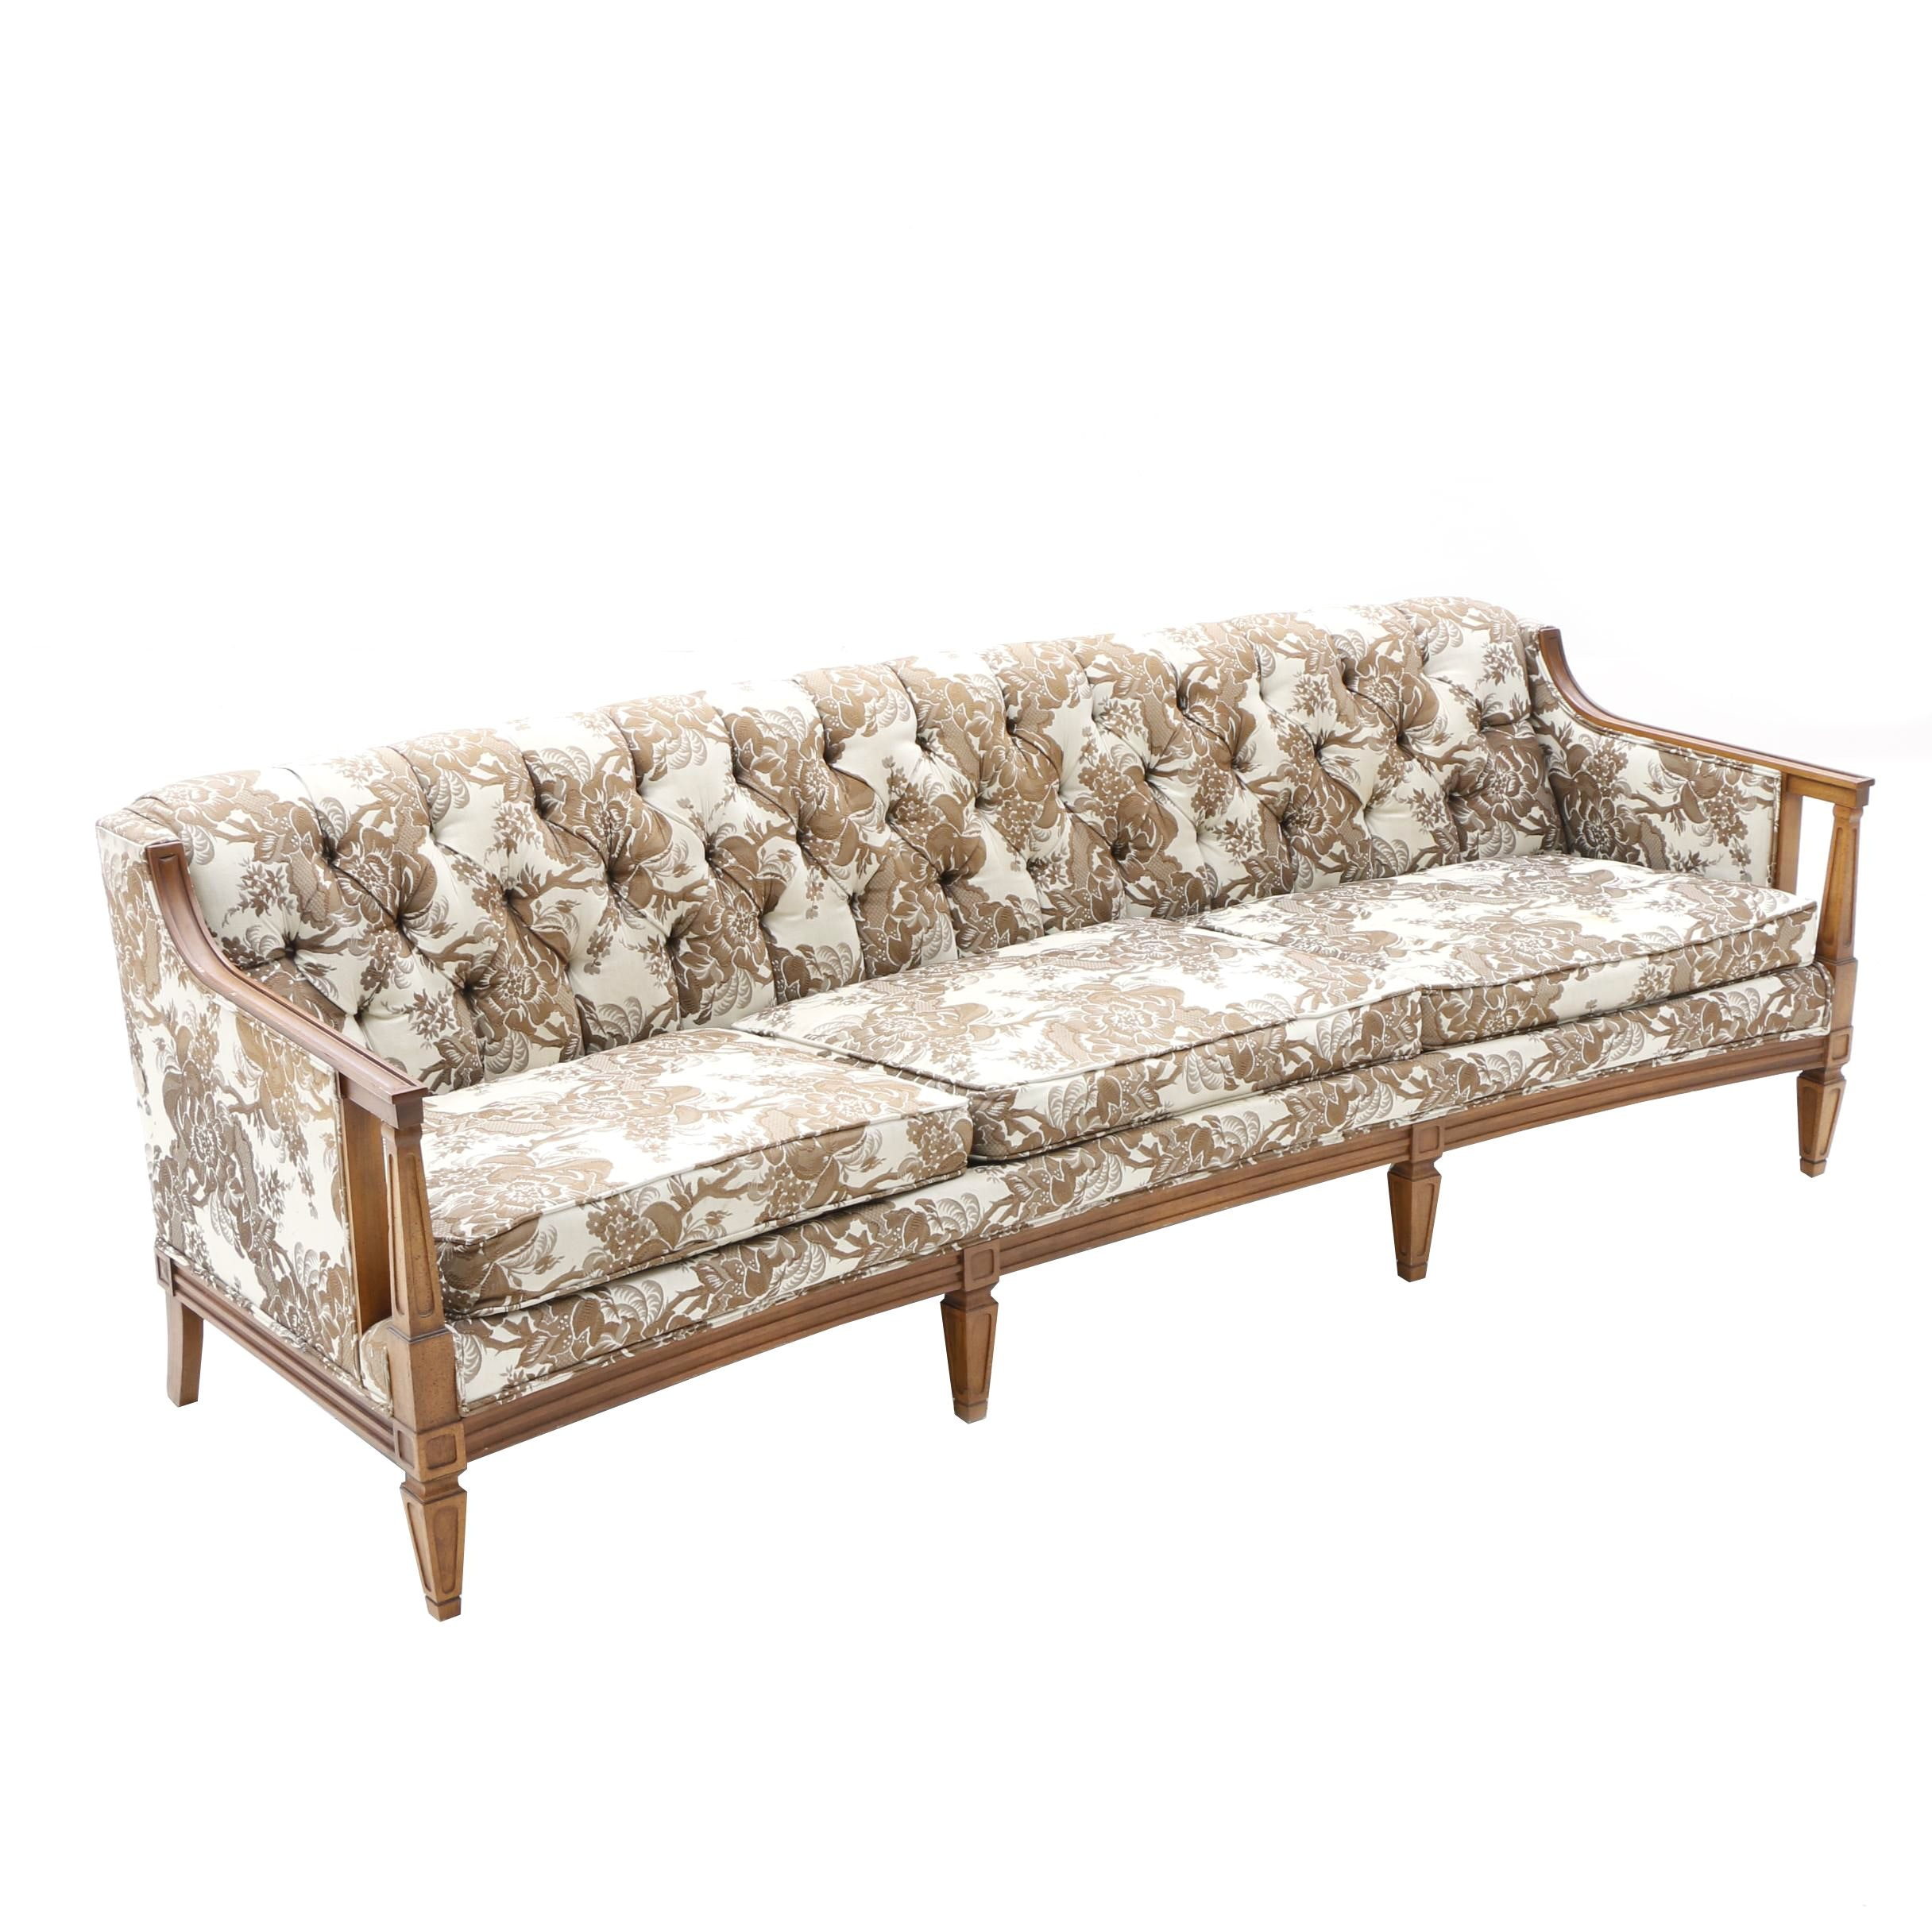 Vintage Broyhill Wood Framed Sofa ...